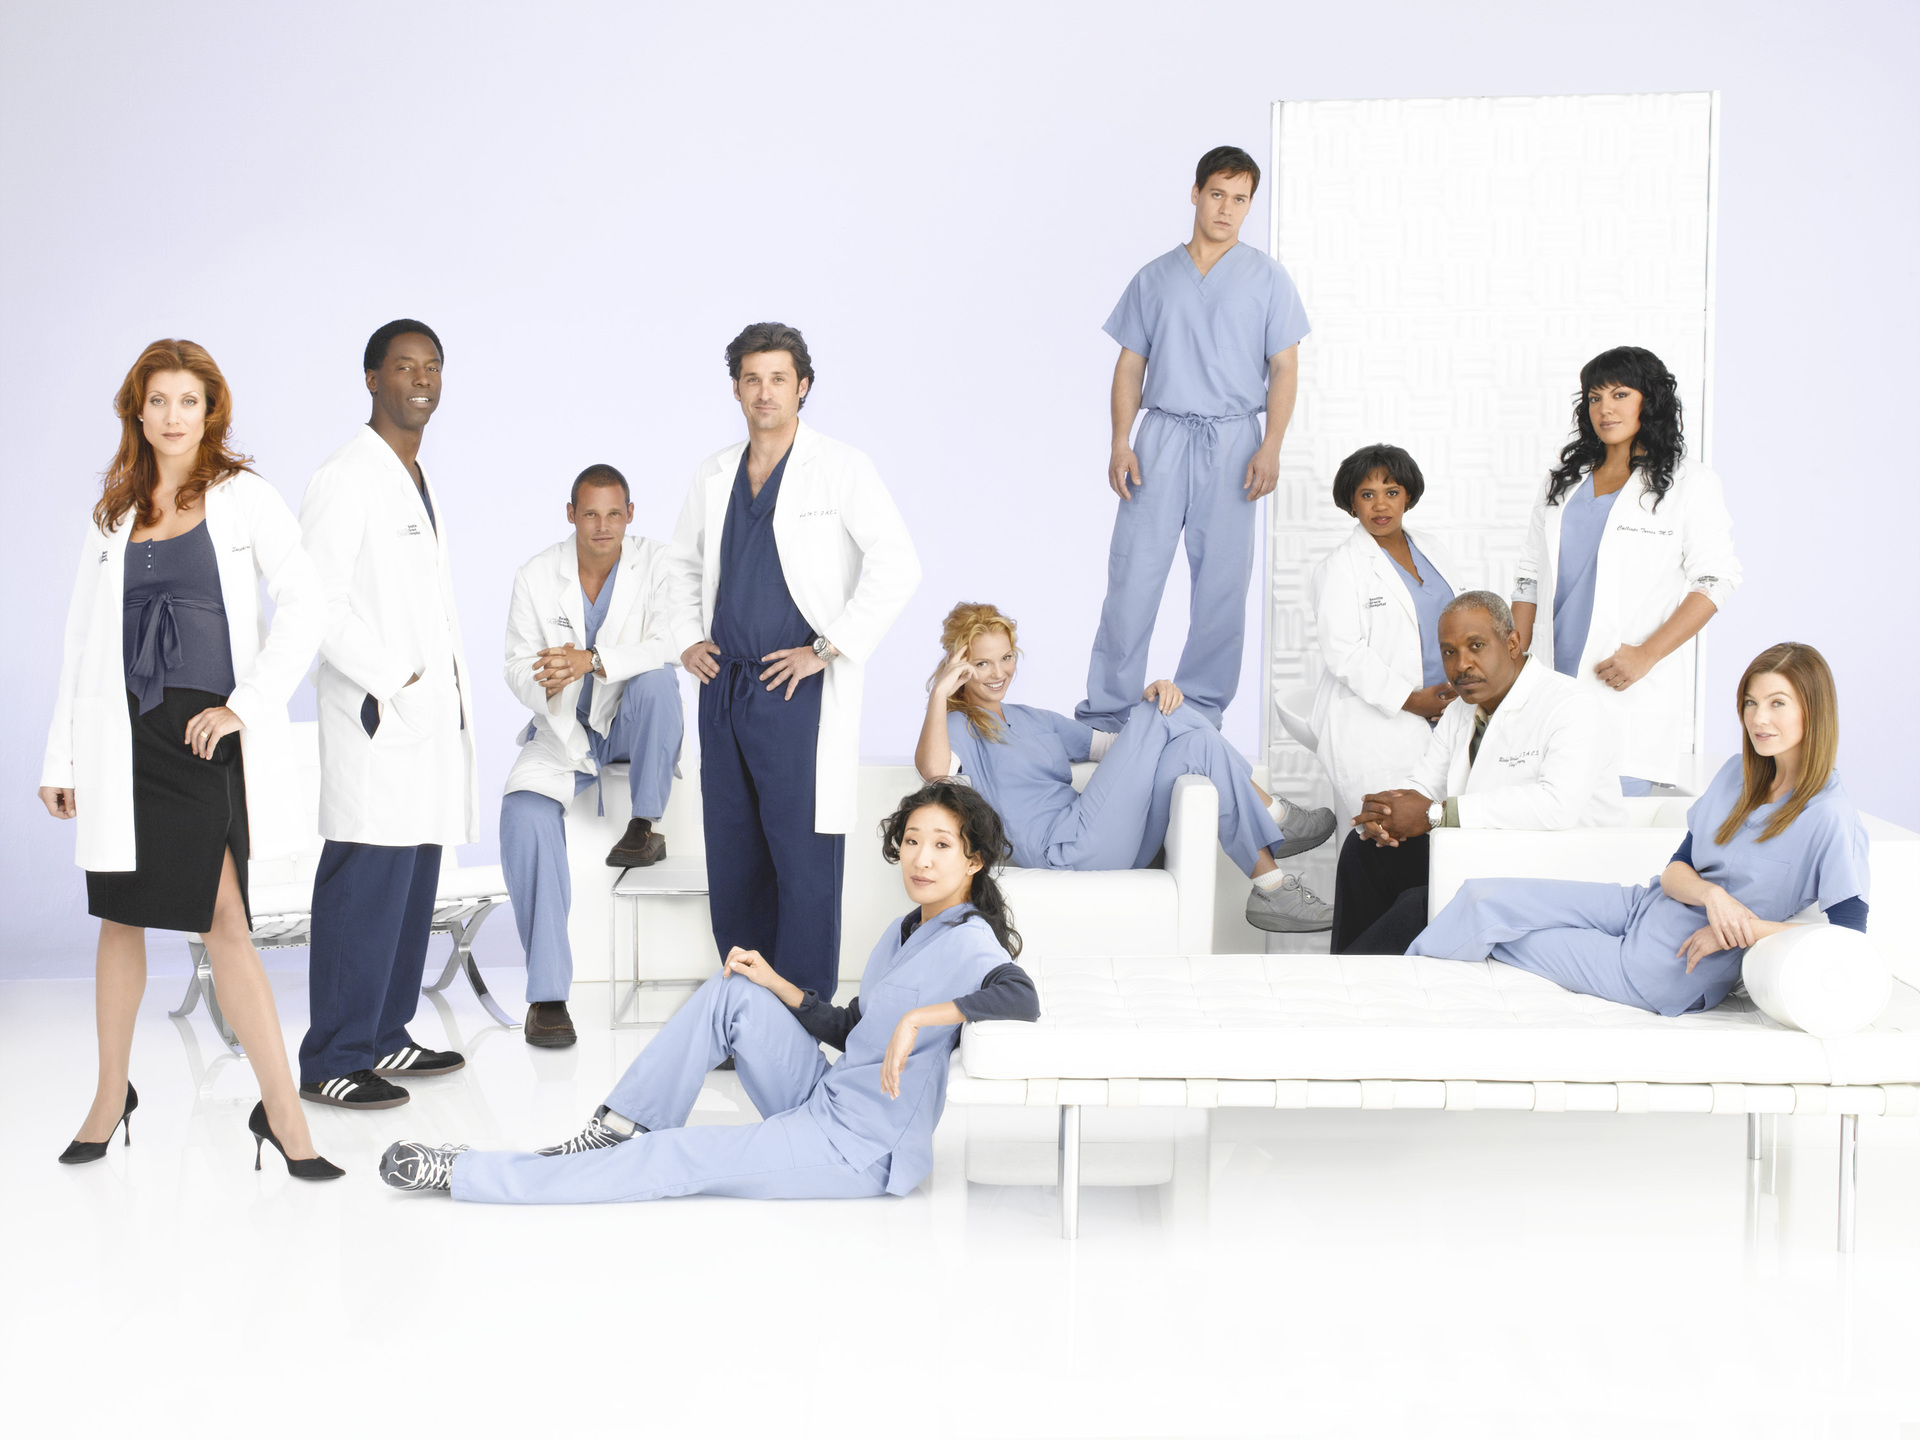 Grey's Anatomy Cast - Grey's Anatomy Wallpaper (67684) - Fanpop